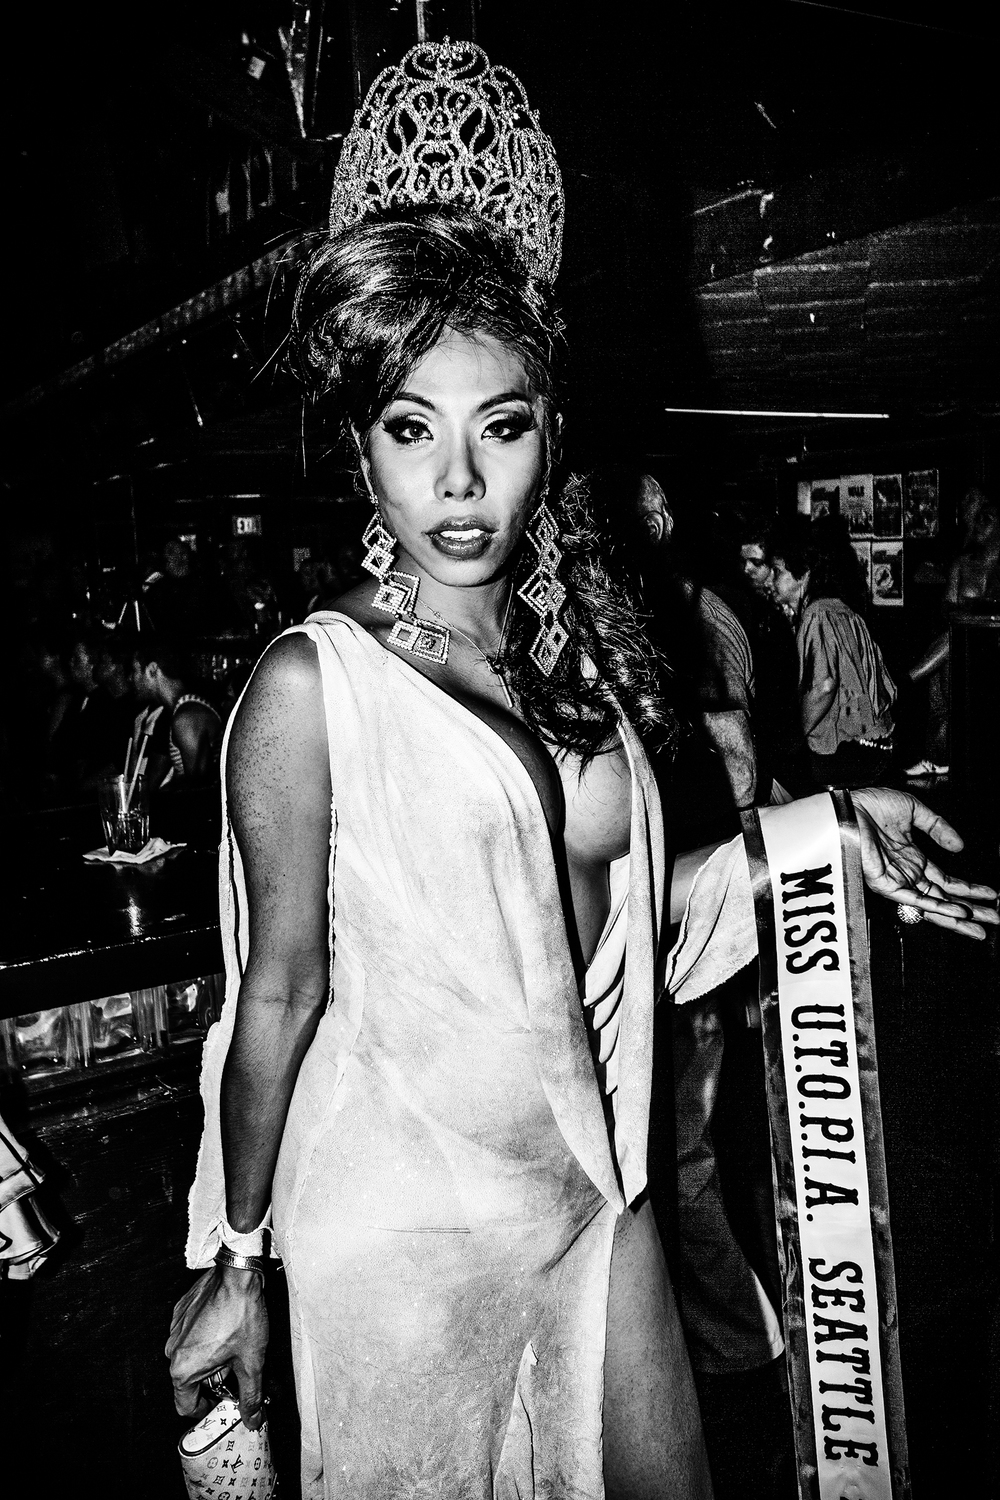 Performer Tanya Rachinee poses for the camera at a drag pageant at Neighbours Nightclub on September 24th, 2011, in Seattle.